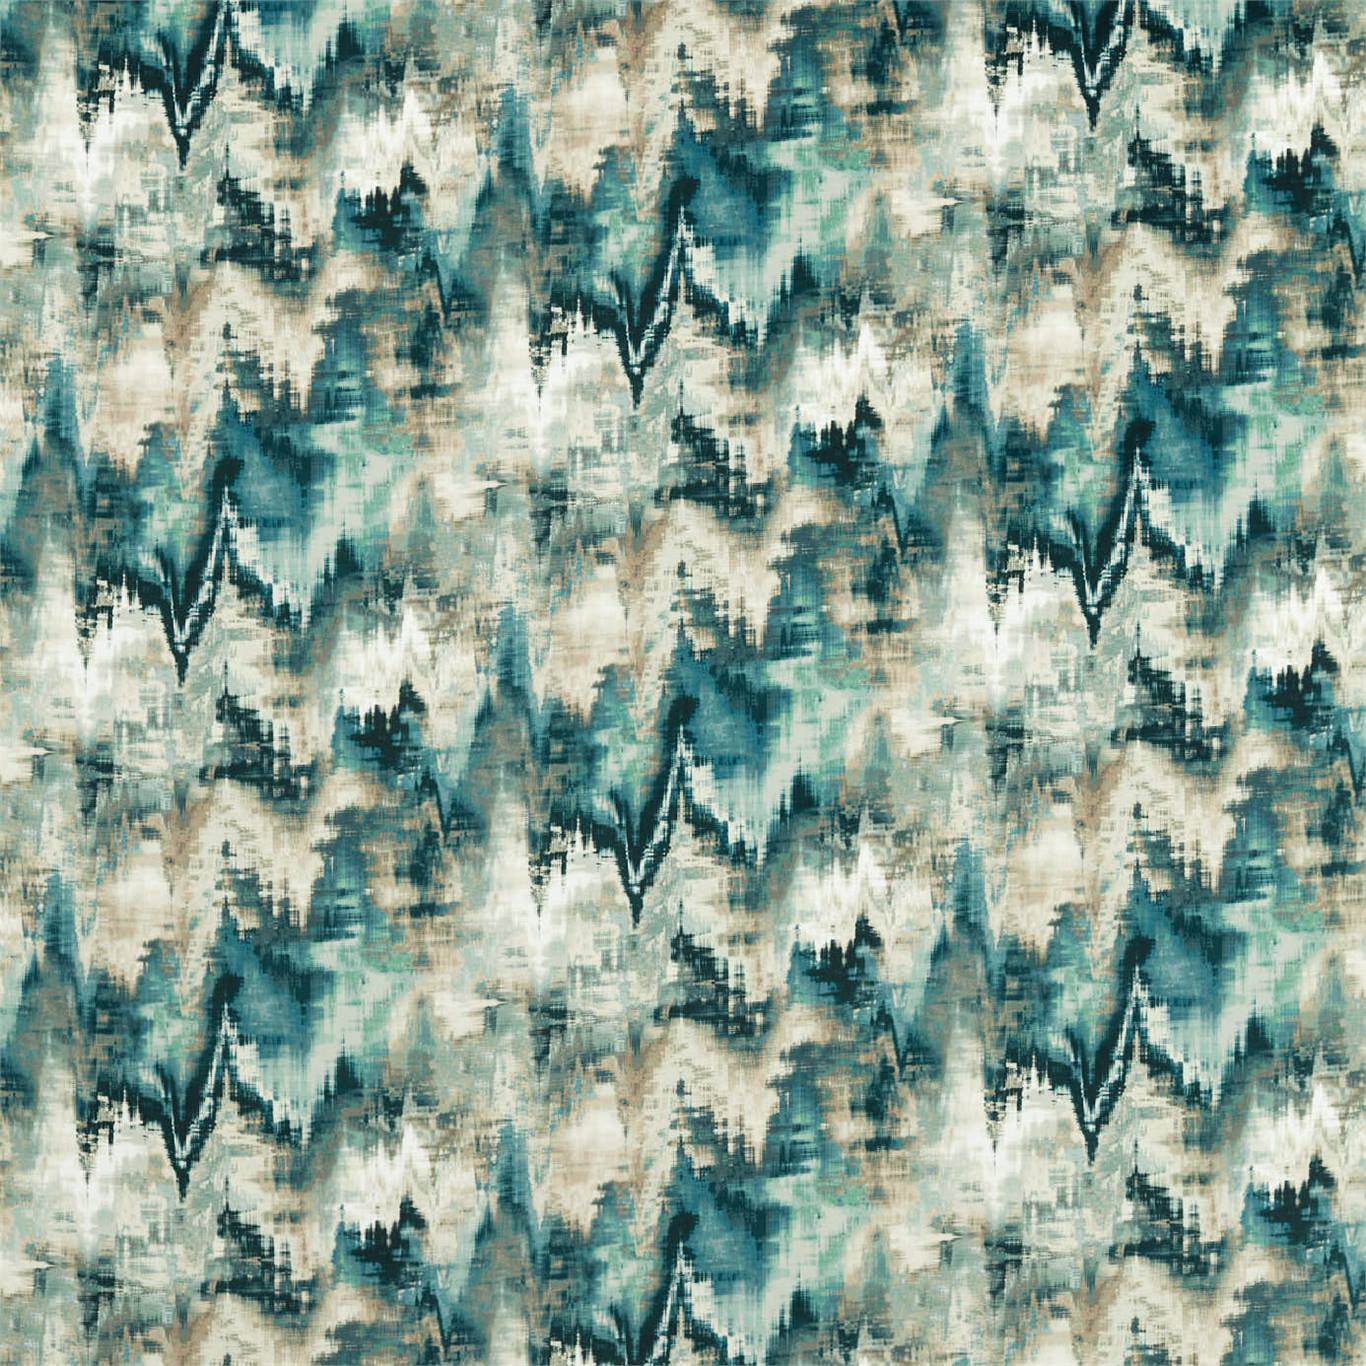 HMTC120964 Collection - Momentum 13 Fabric